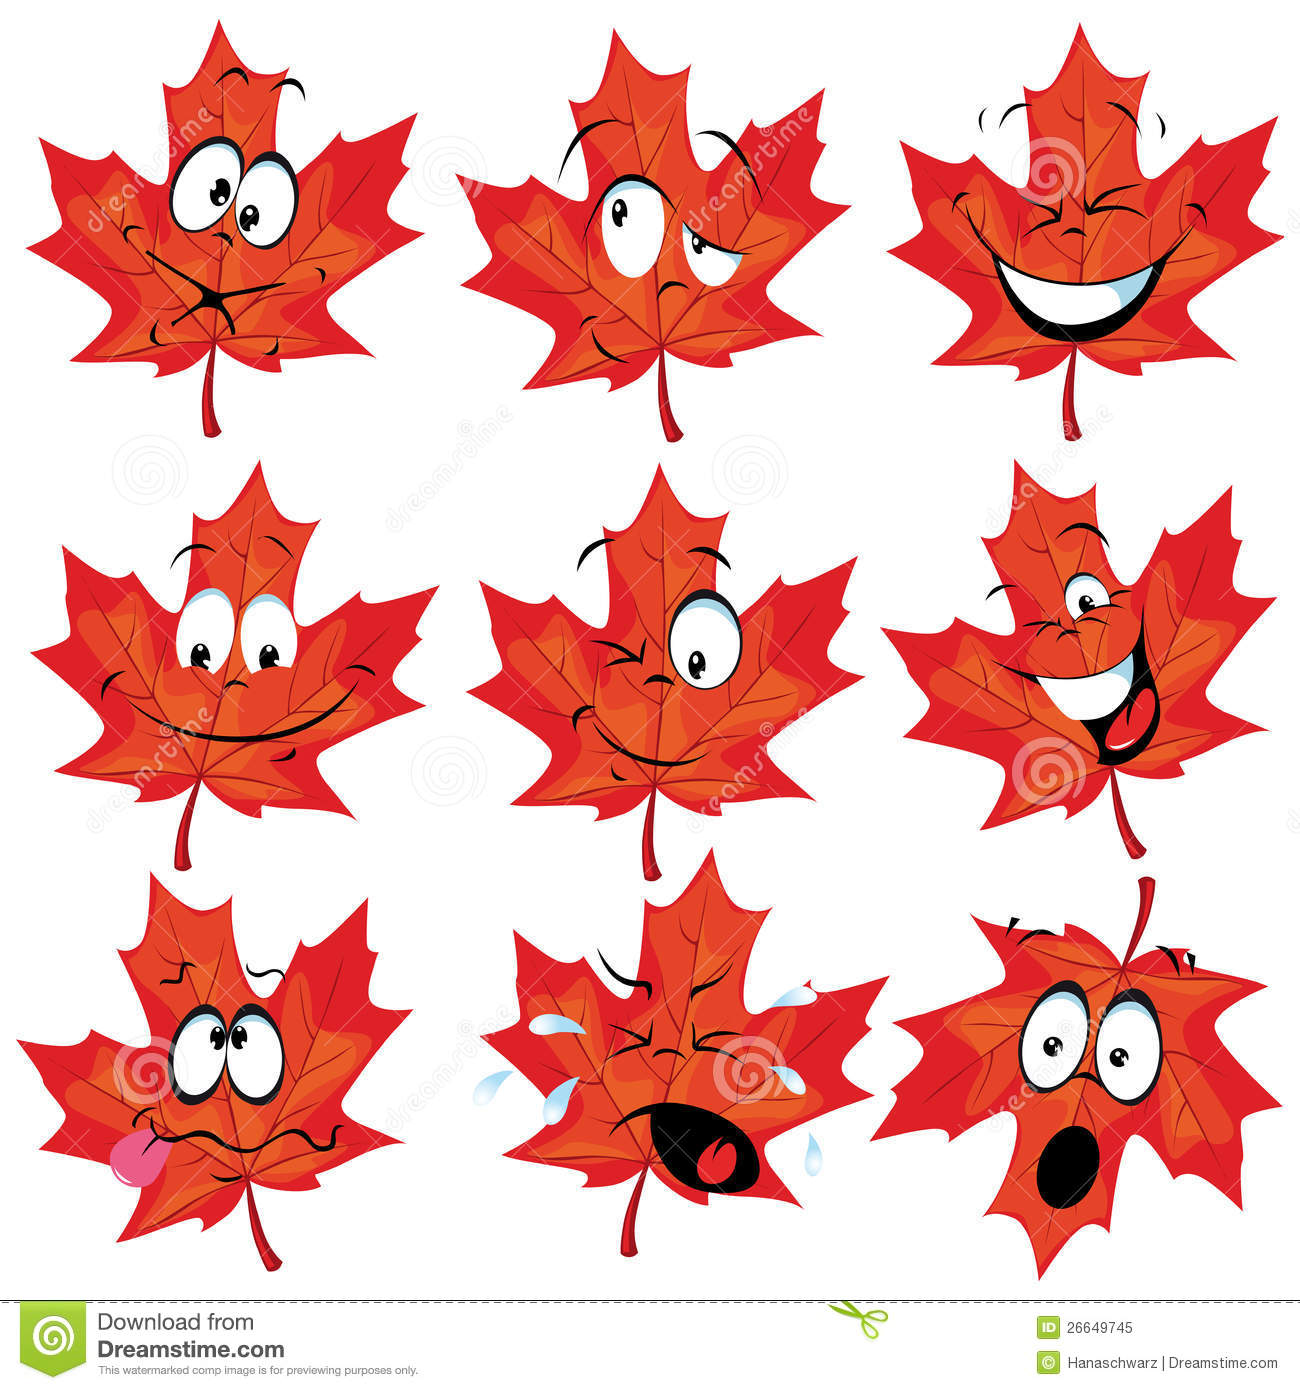 Maple Leaf Wallpaper For Fall Season Red Maple Leaf Mascot Royalty Free Stock Photo Image